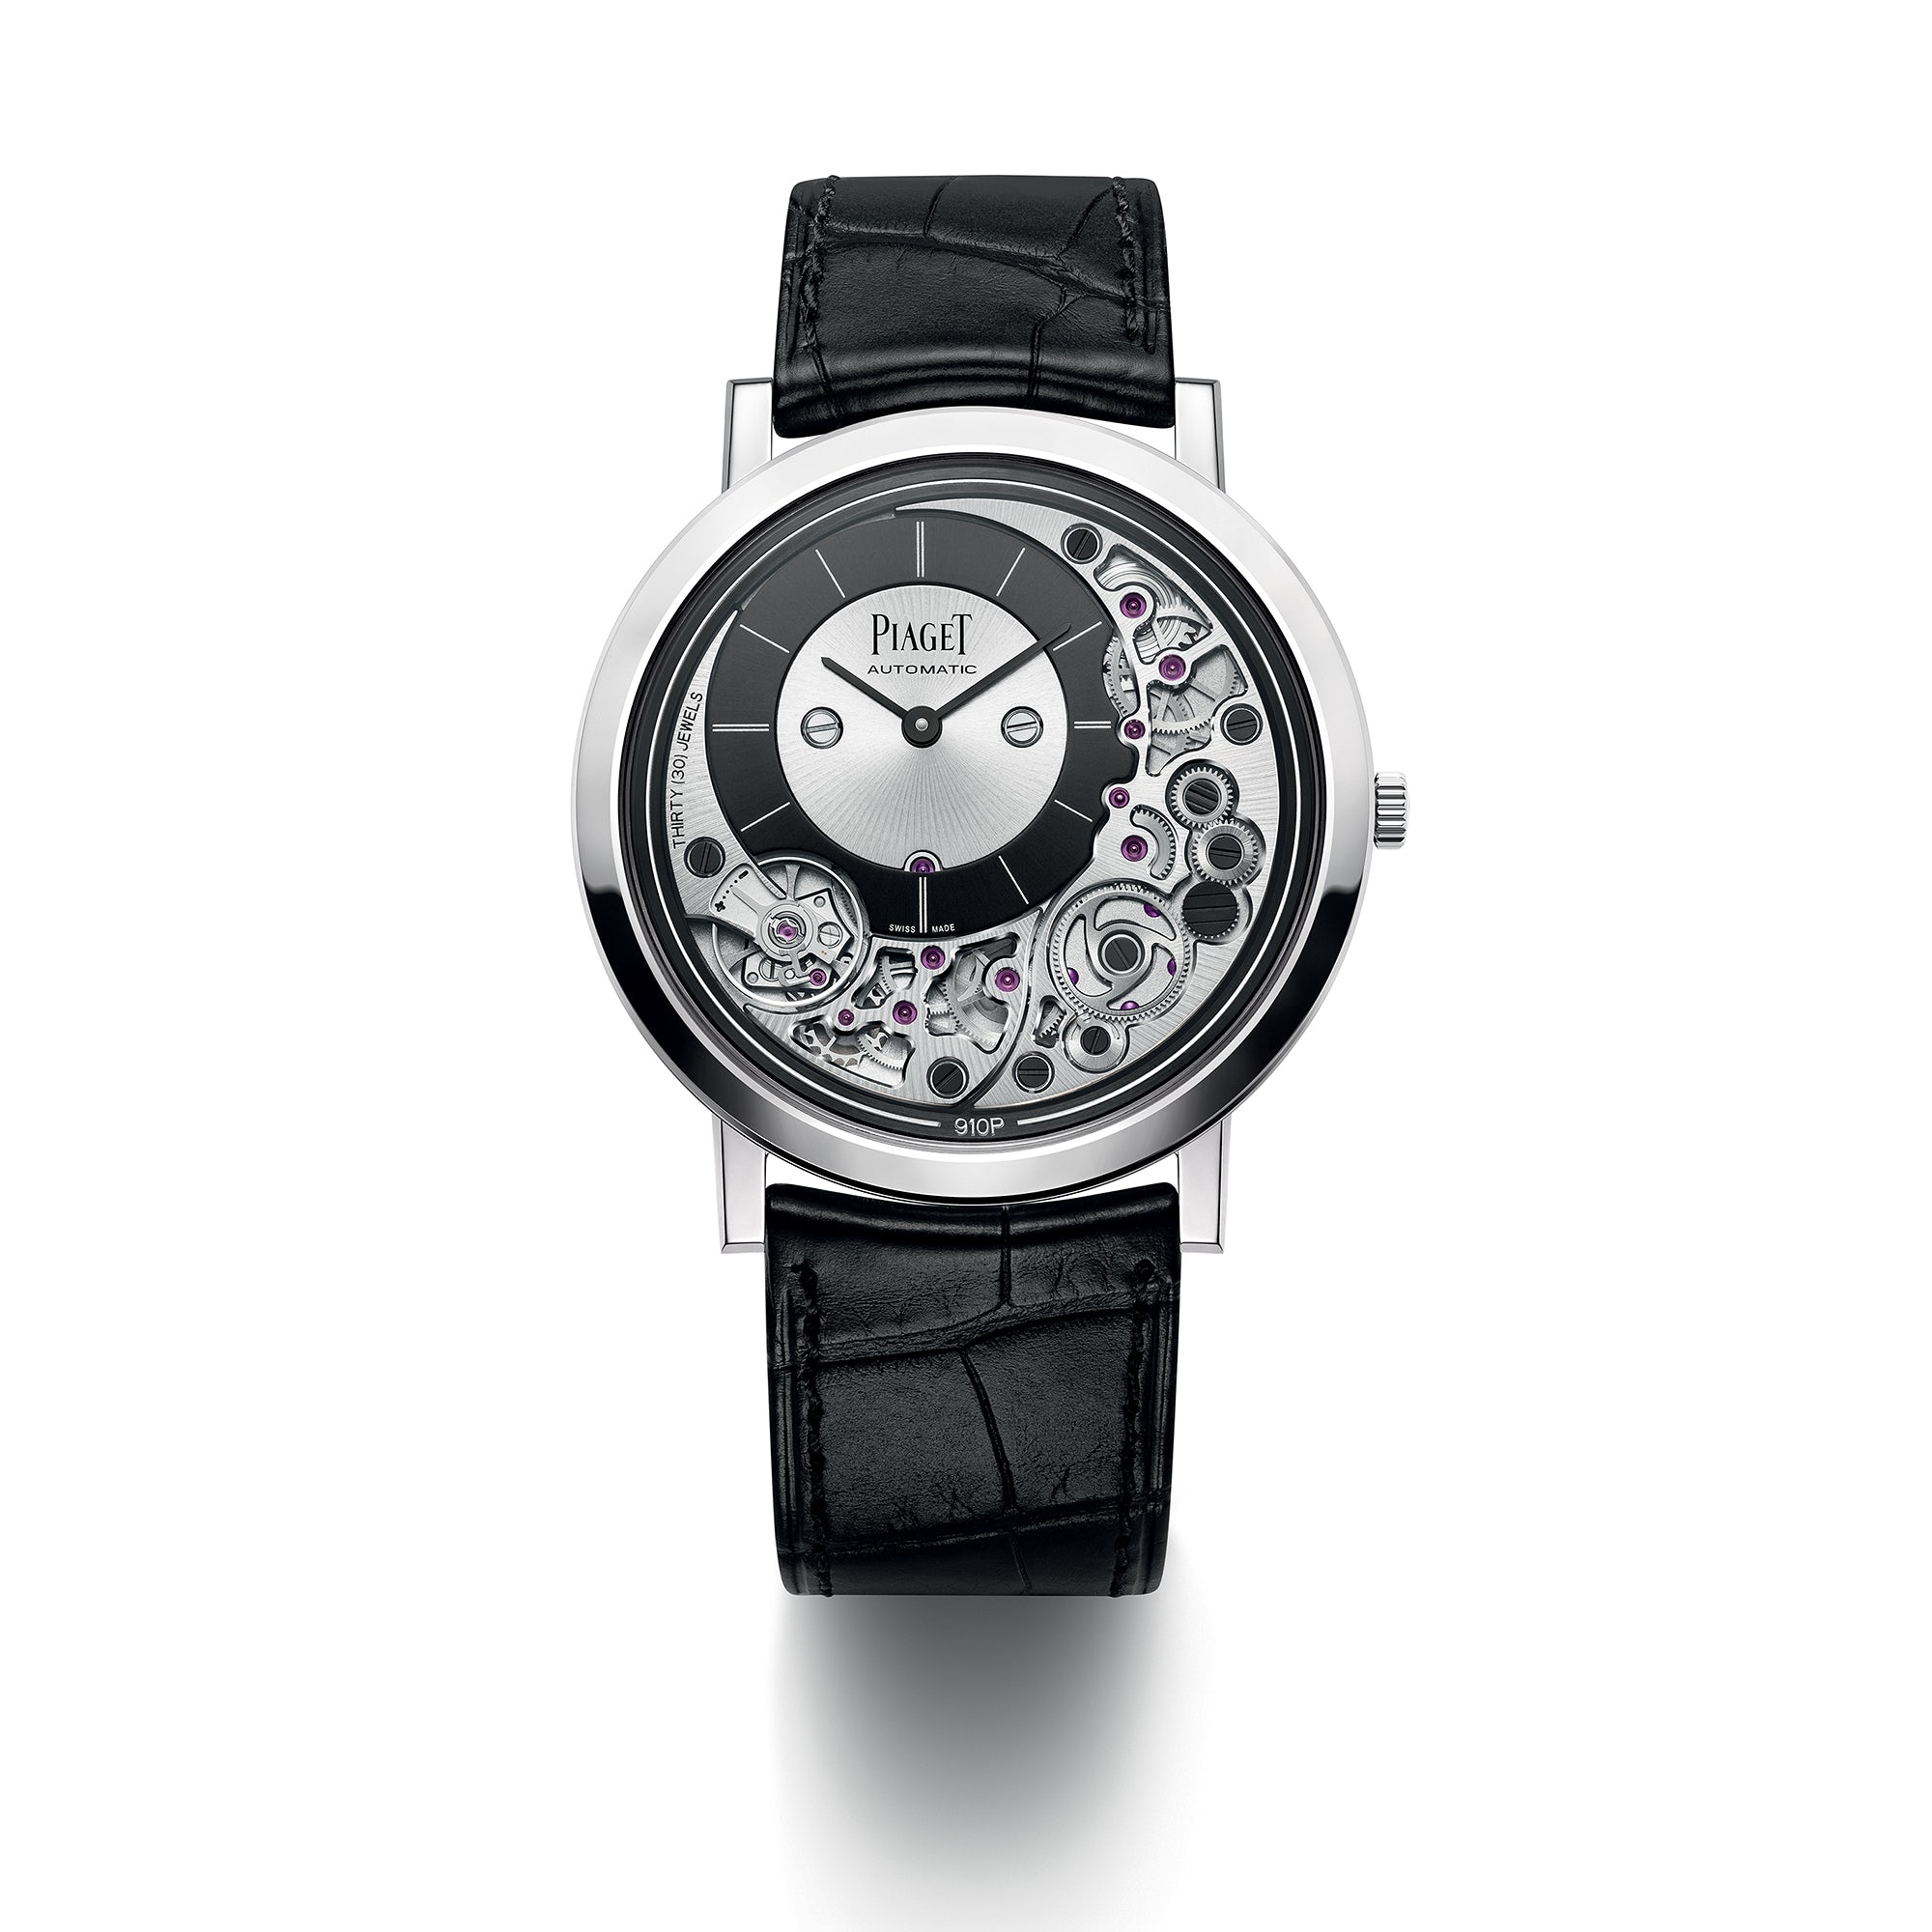 Piaget-Altiplano-Ultimate-910P-2.jpg